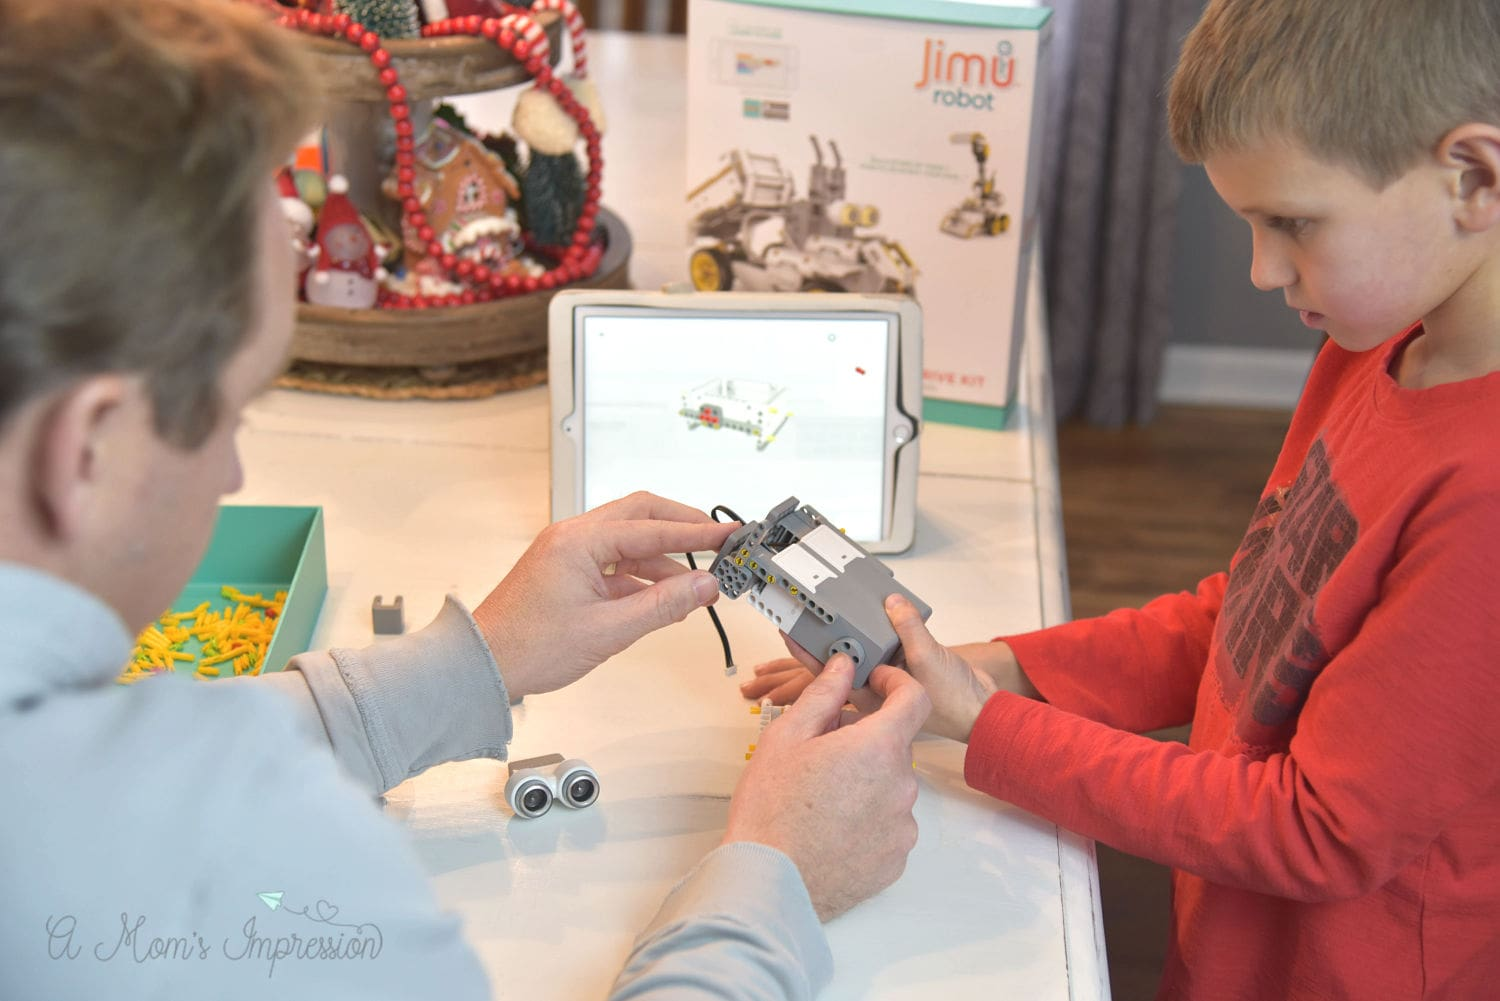 dad and son building robot